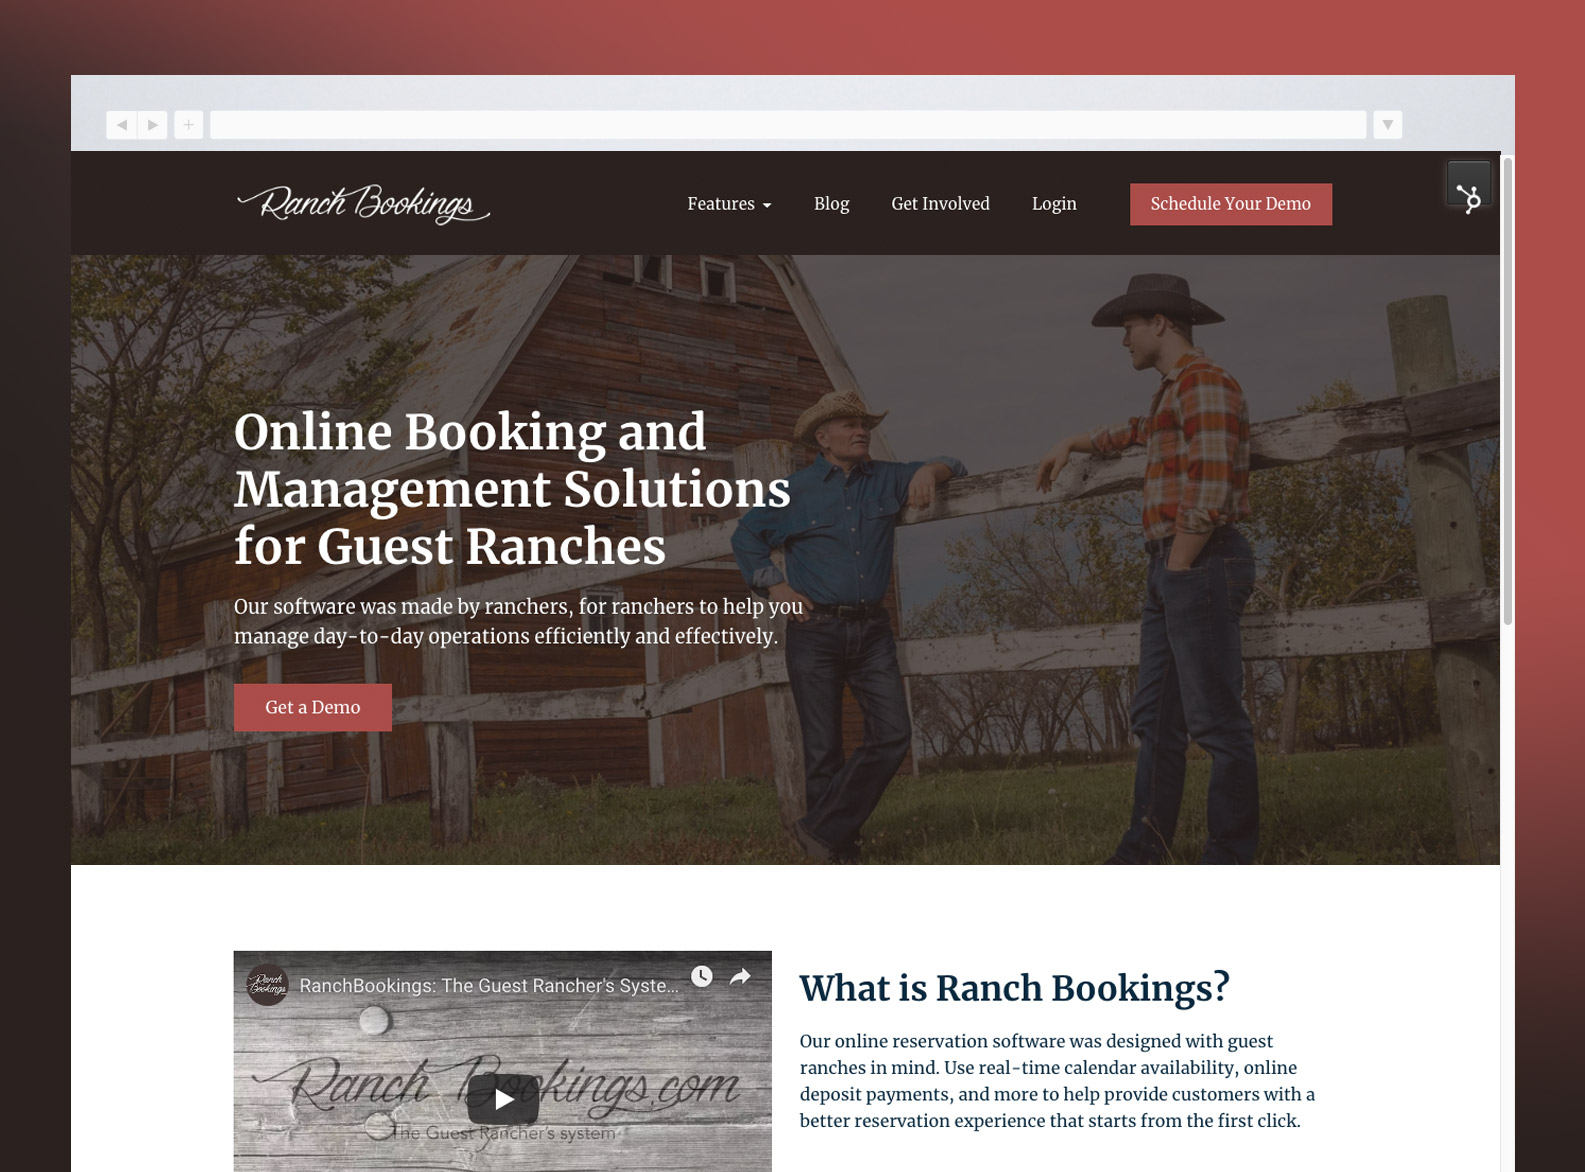 Ranch Bookings